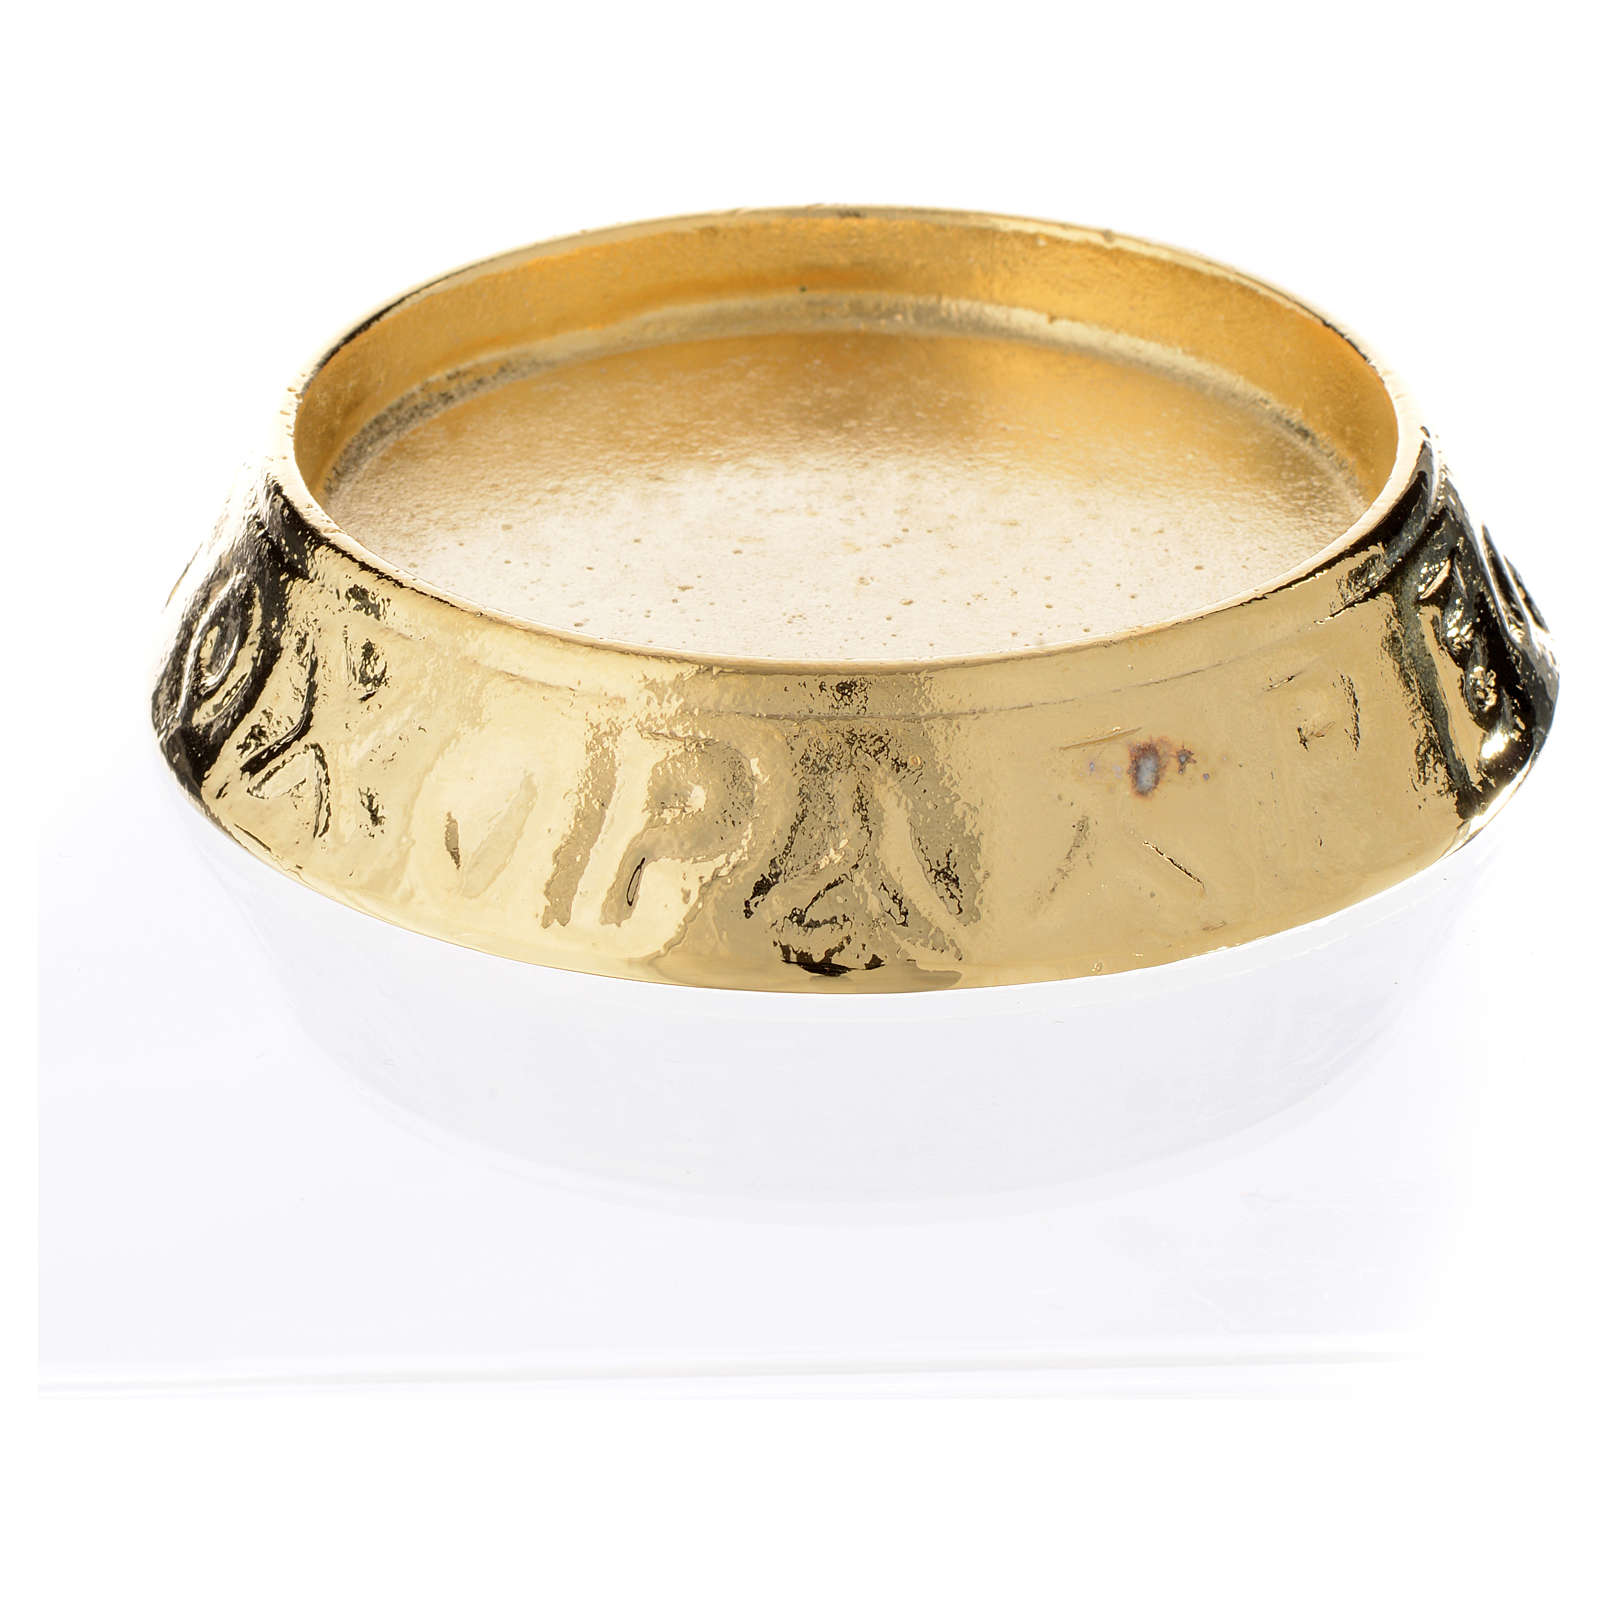 Candle holder in cast brass, 11cm diameter 3